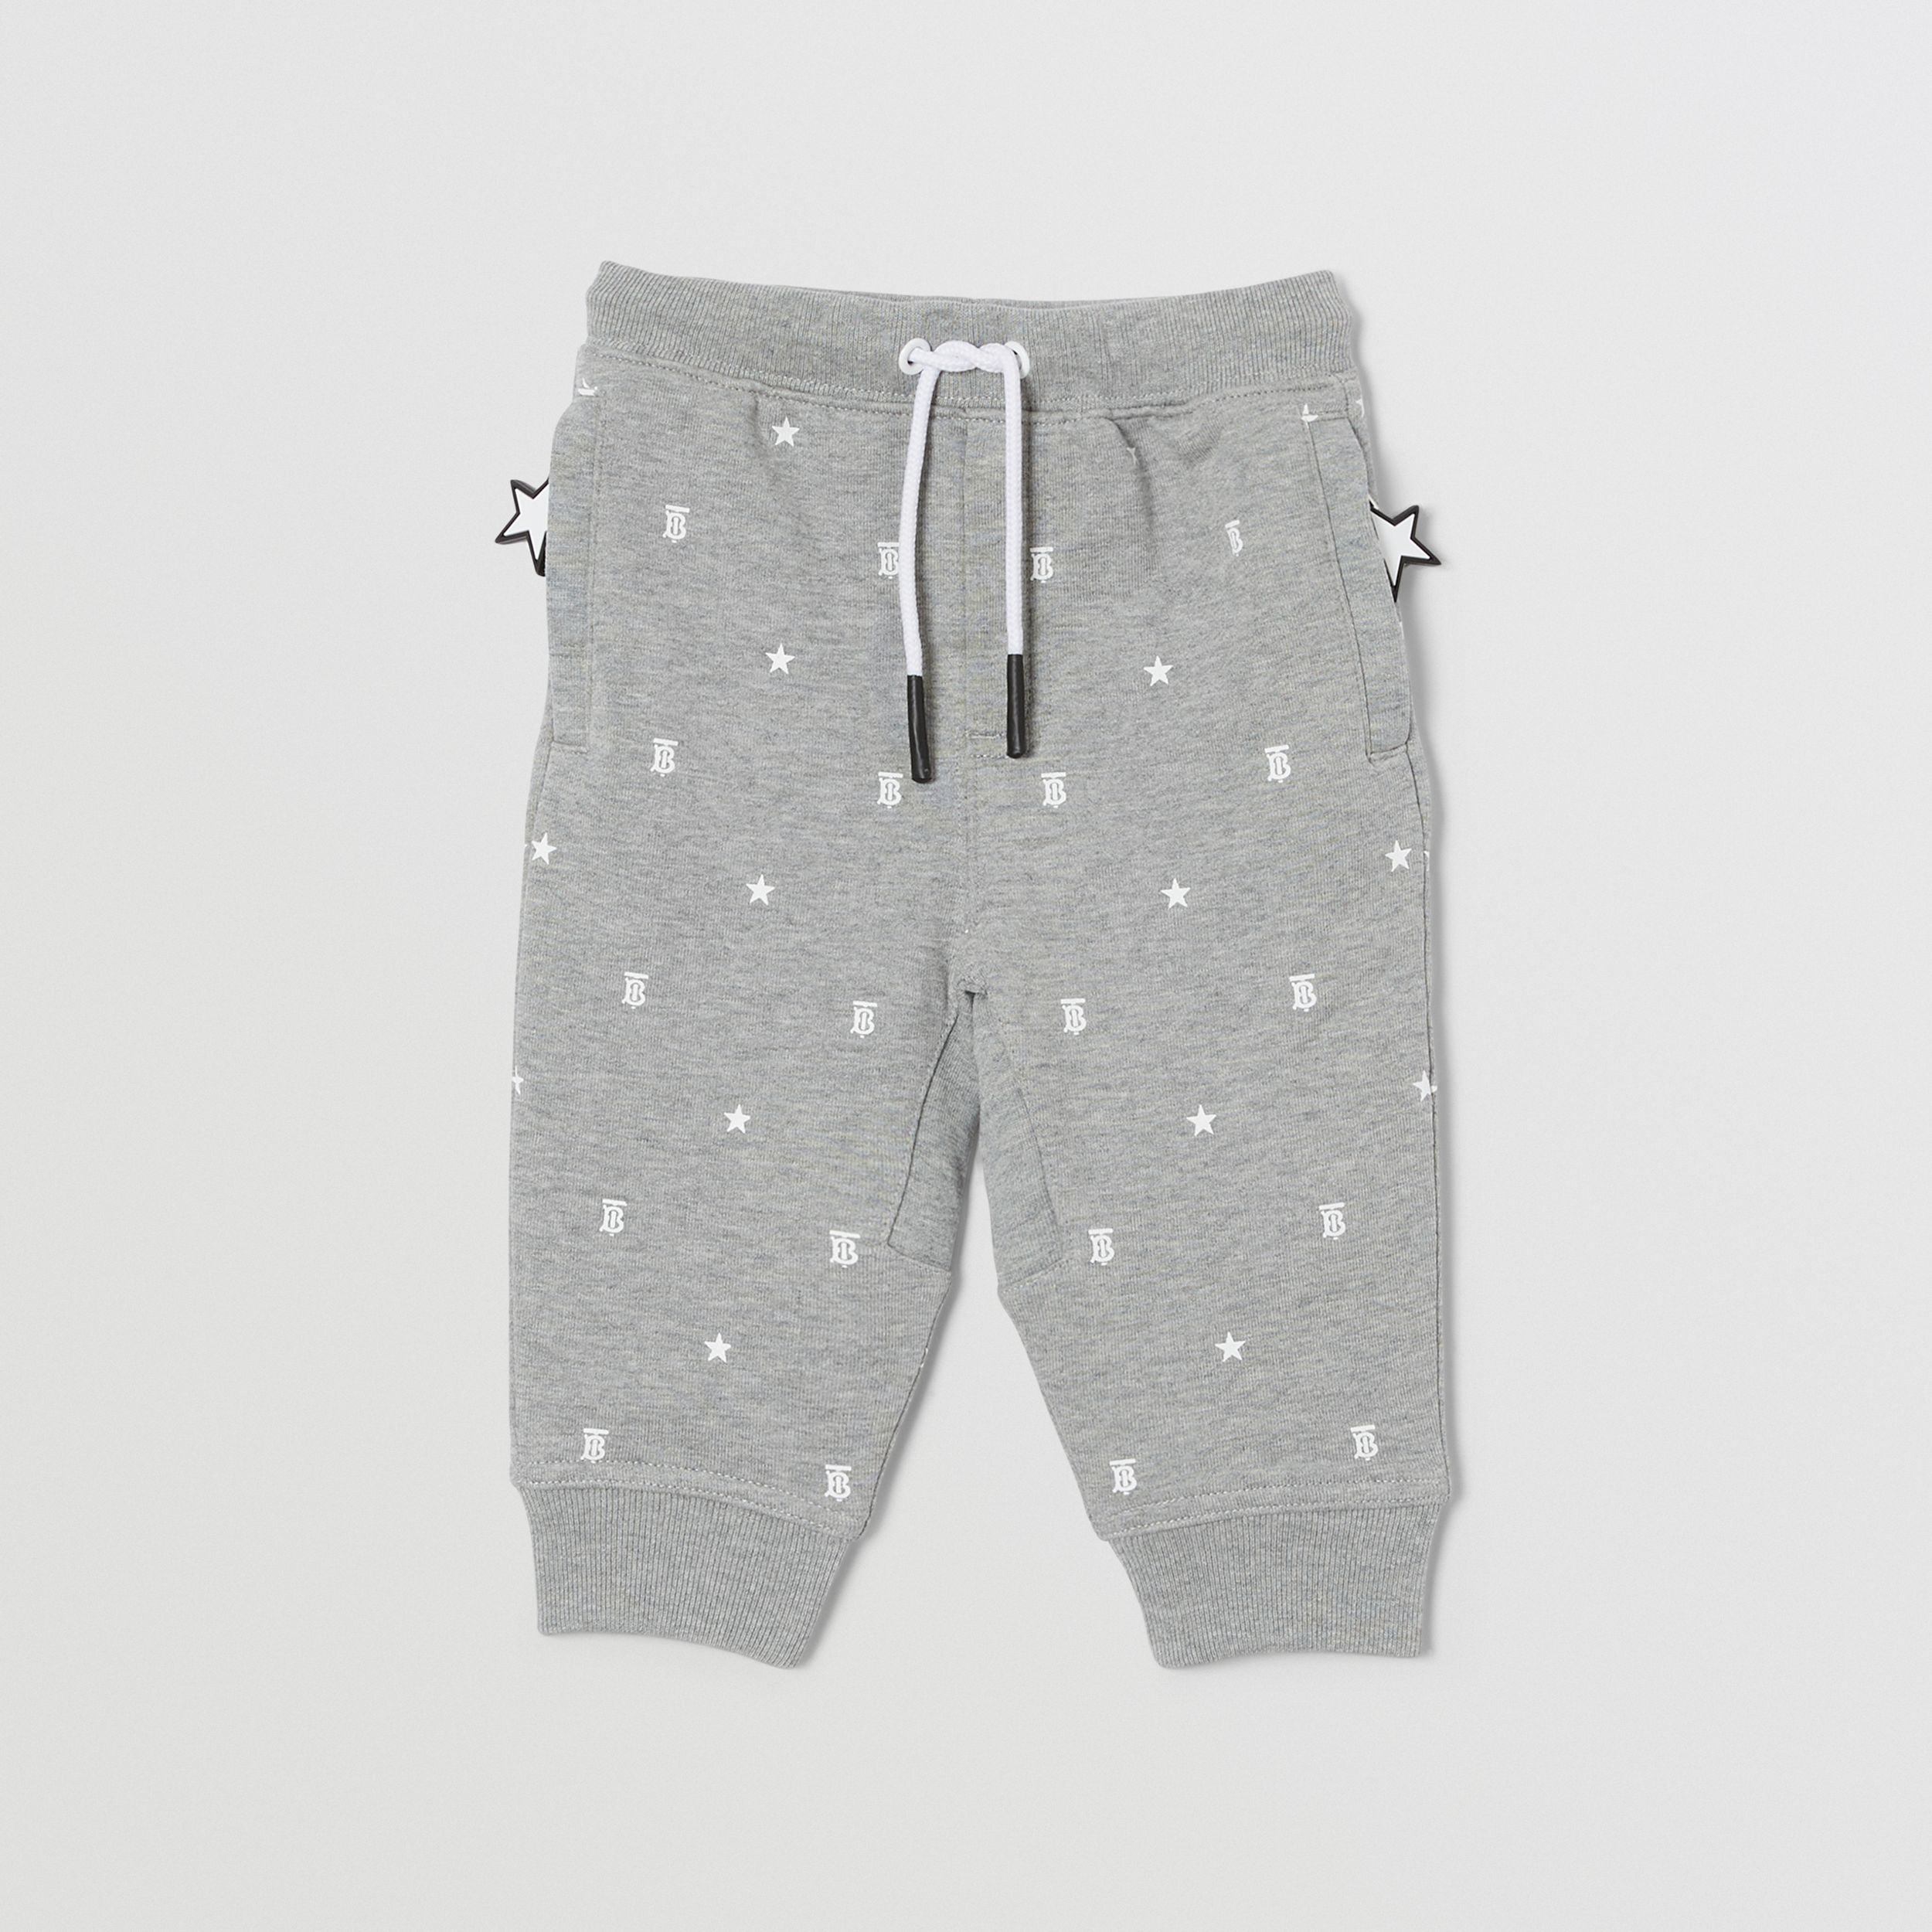 Star and Monogram Motif Cotton Jogging Pants in Grey - Children | Burberry - 1